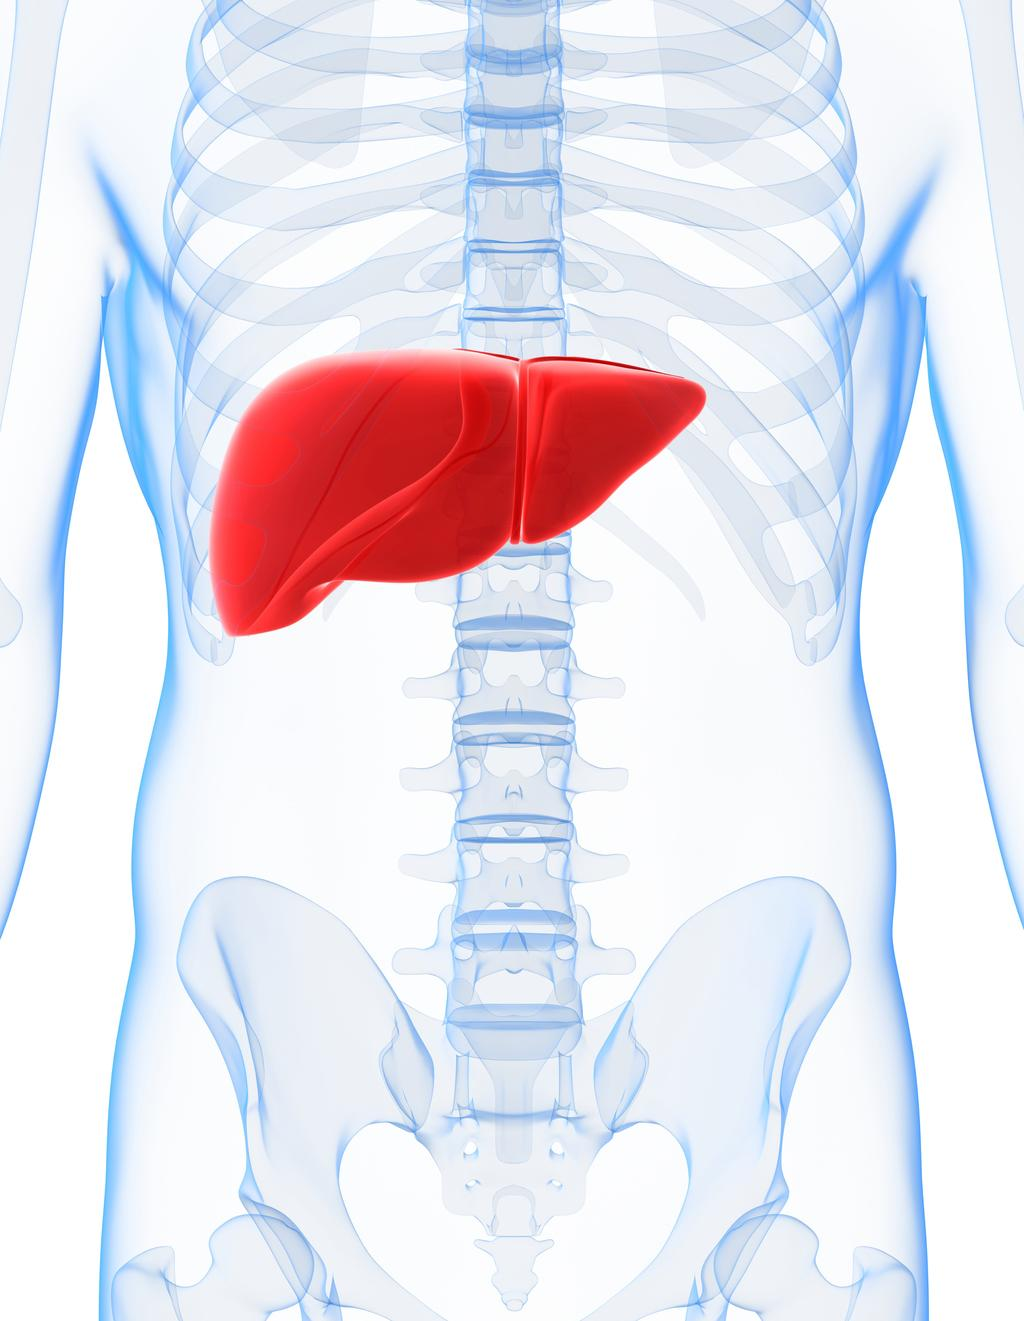 hepatology presented at the 2017 AASLD Meeting for